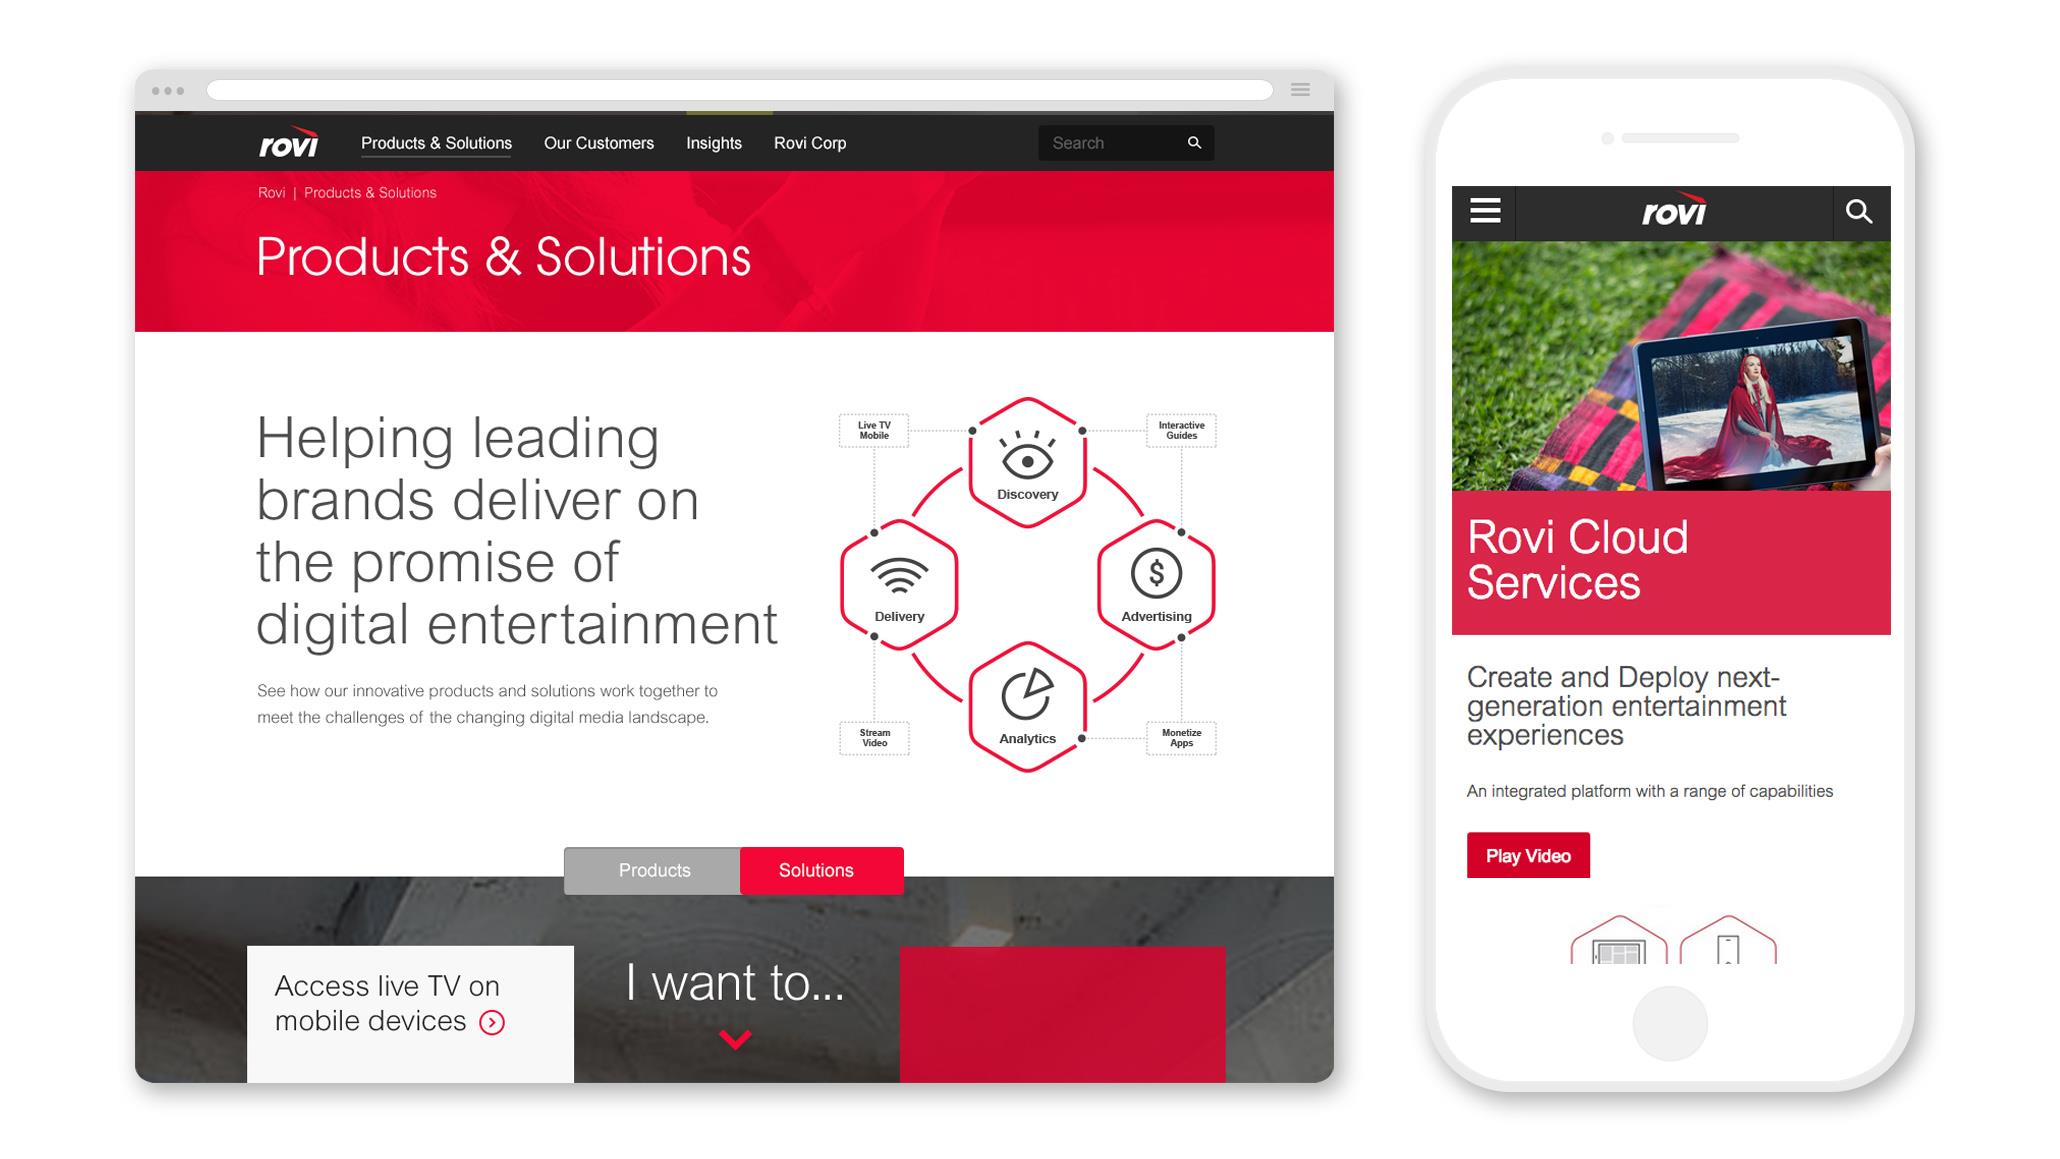 Rovi: Solutions-based Sales Approach Launches a Fresh Direction